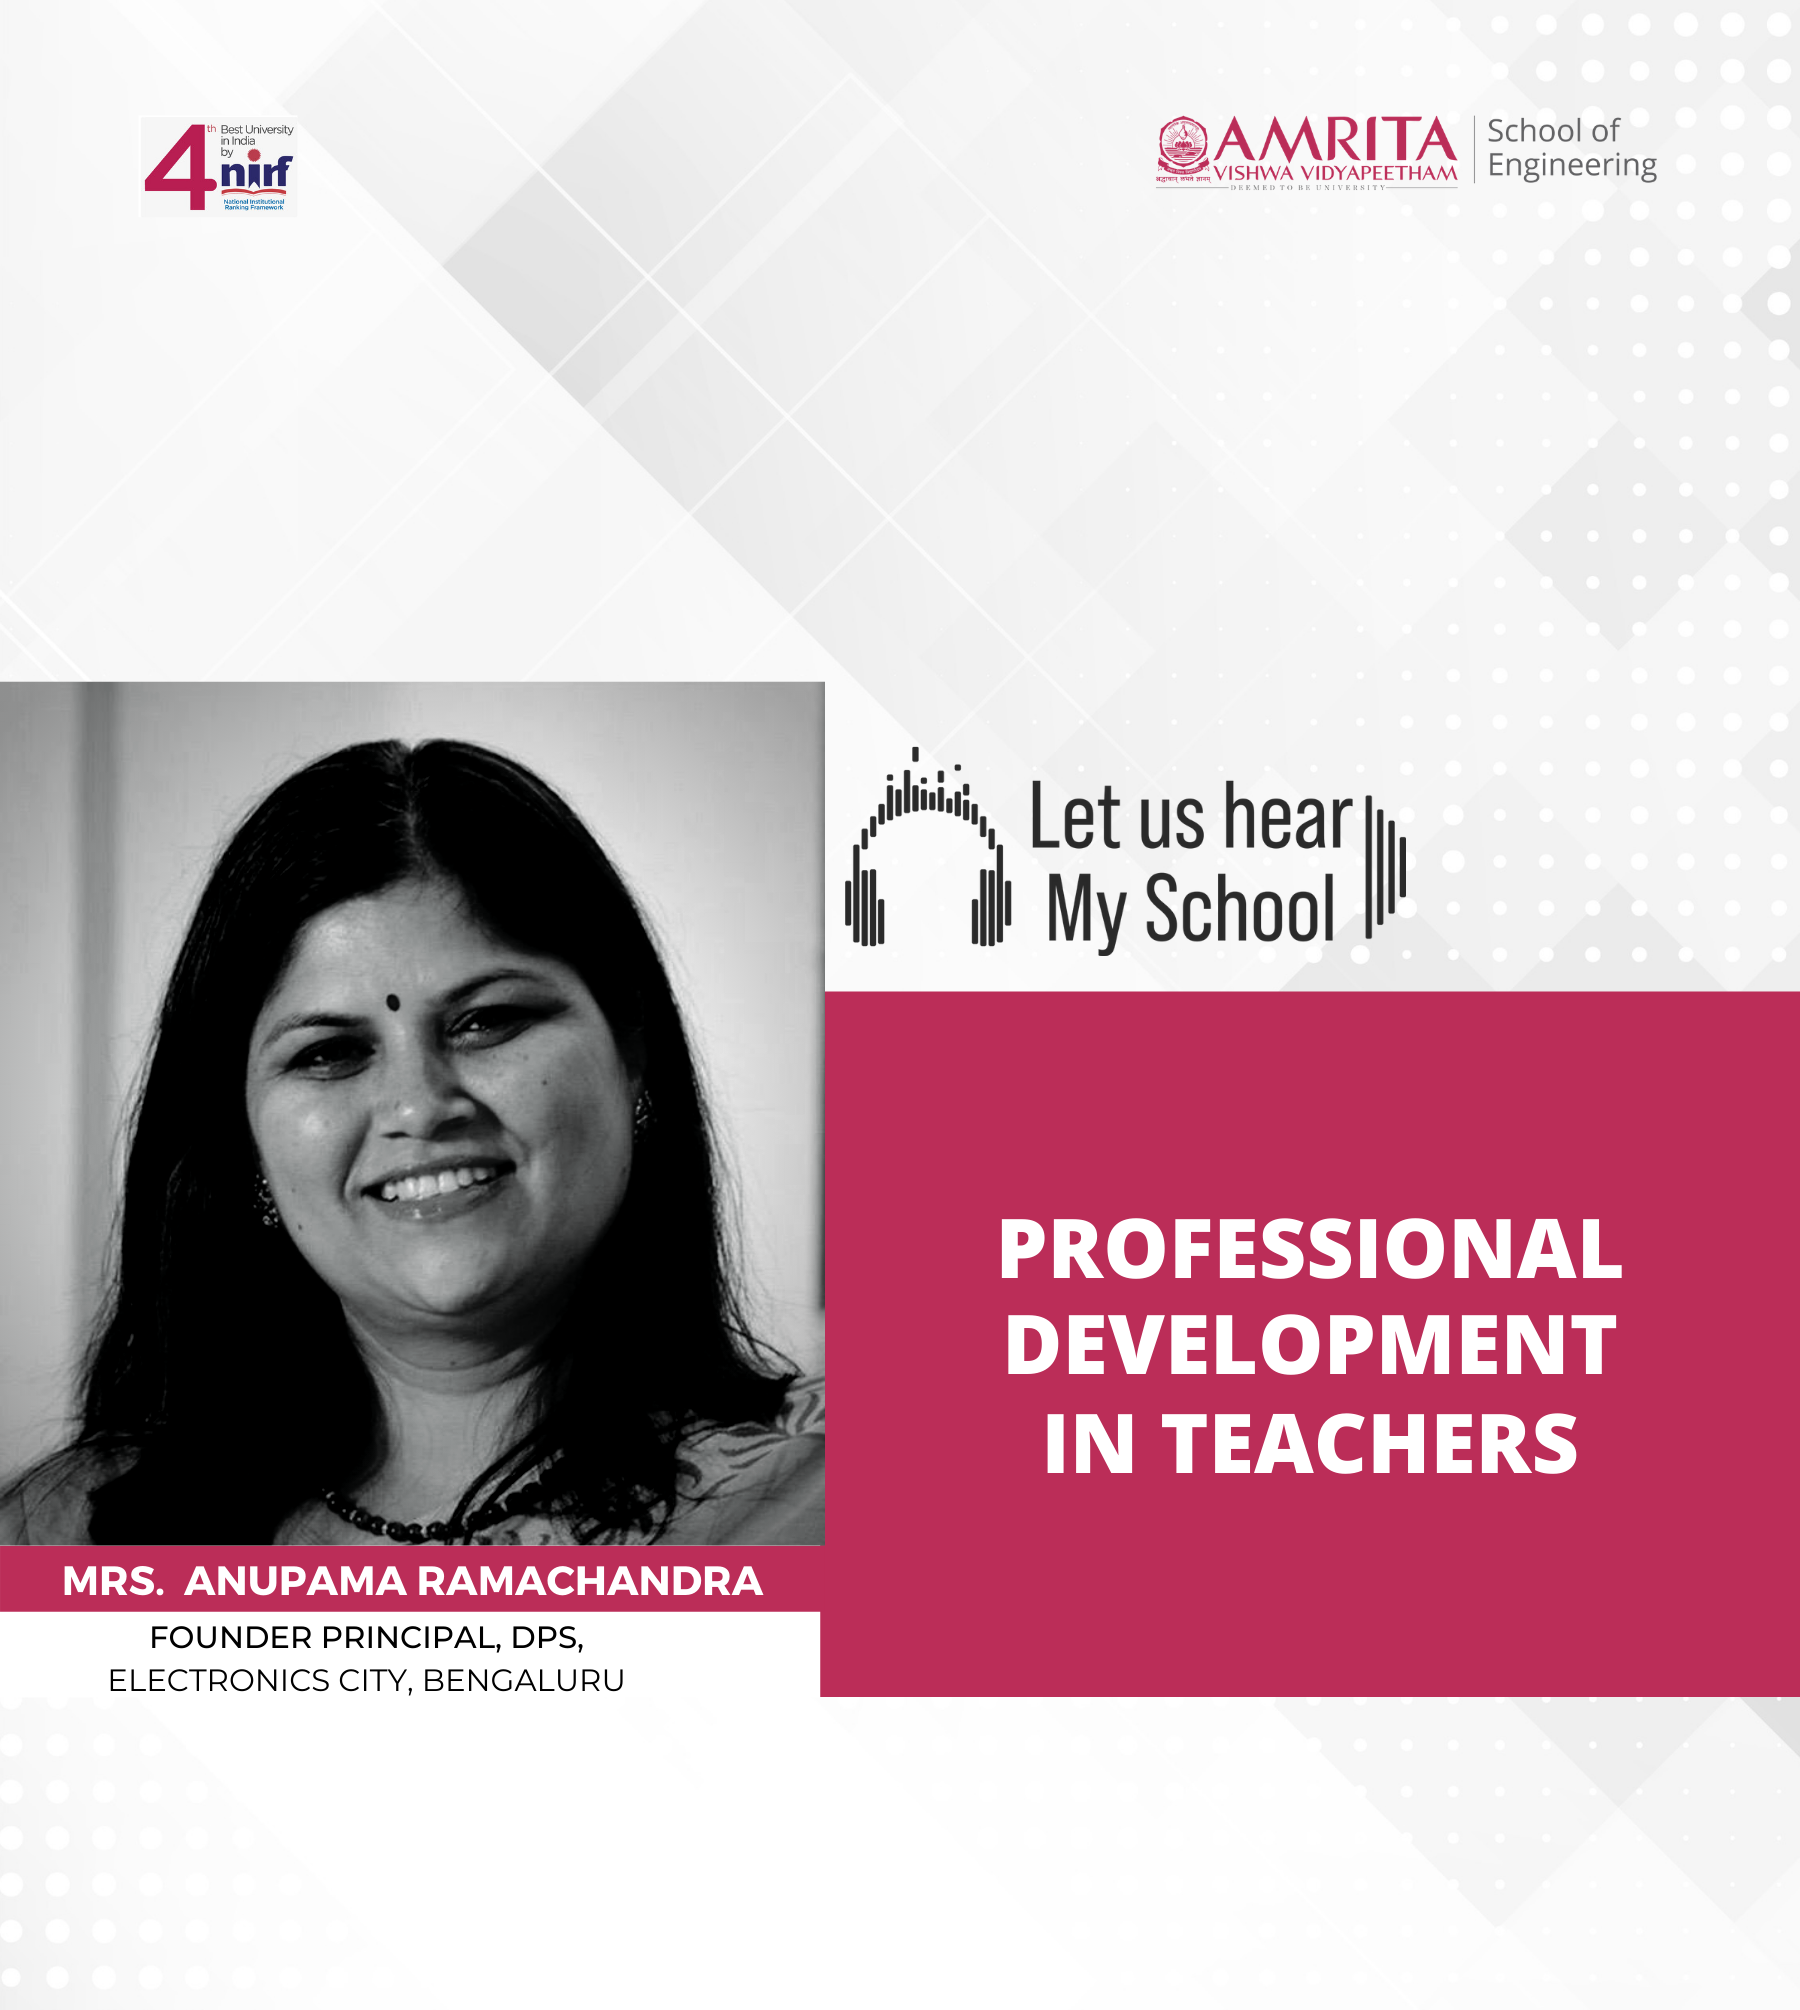 Let us hear! My School! Mrs. Anupama Ramachandra, Professional Development in Teachers